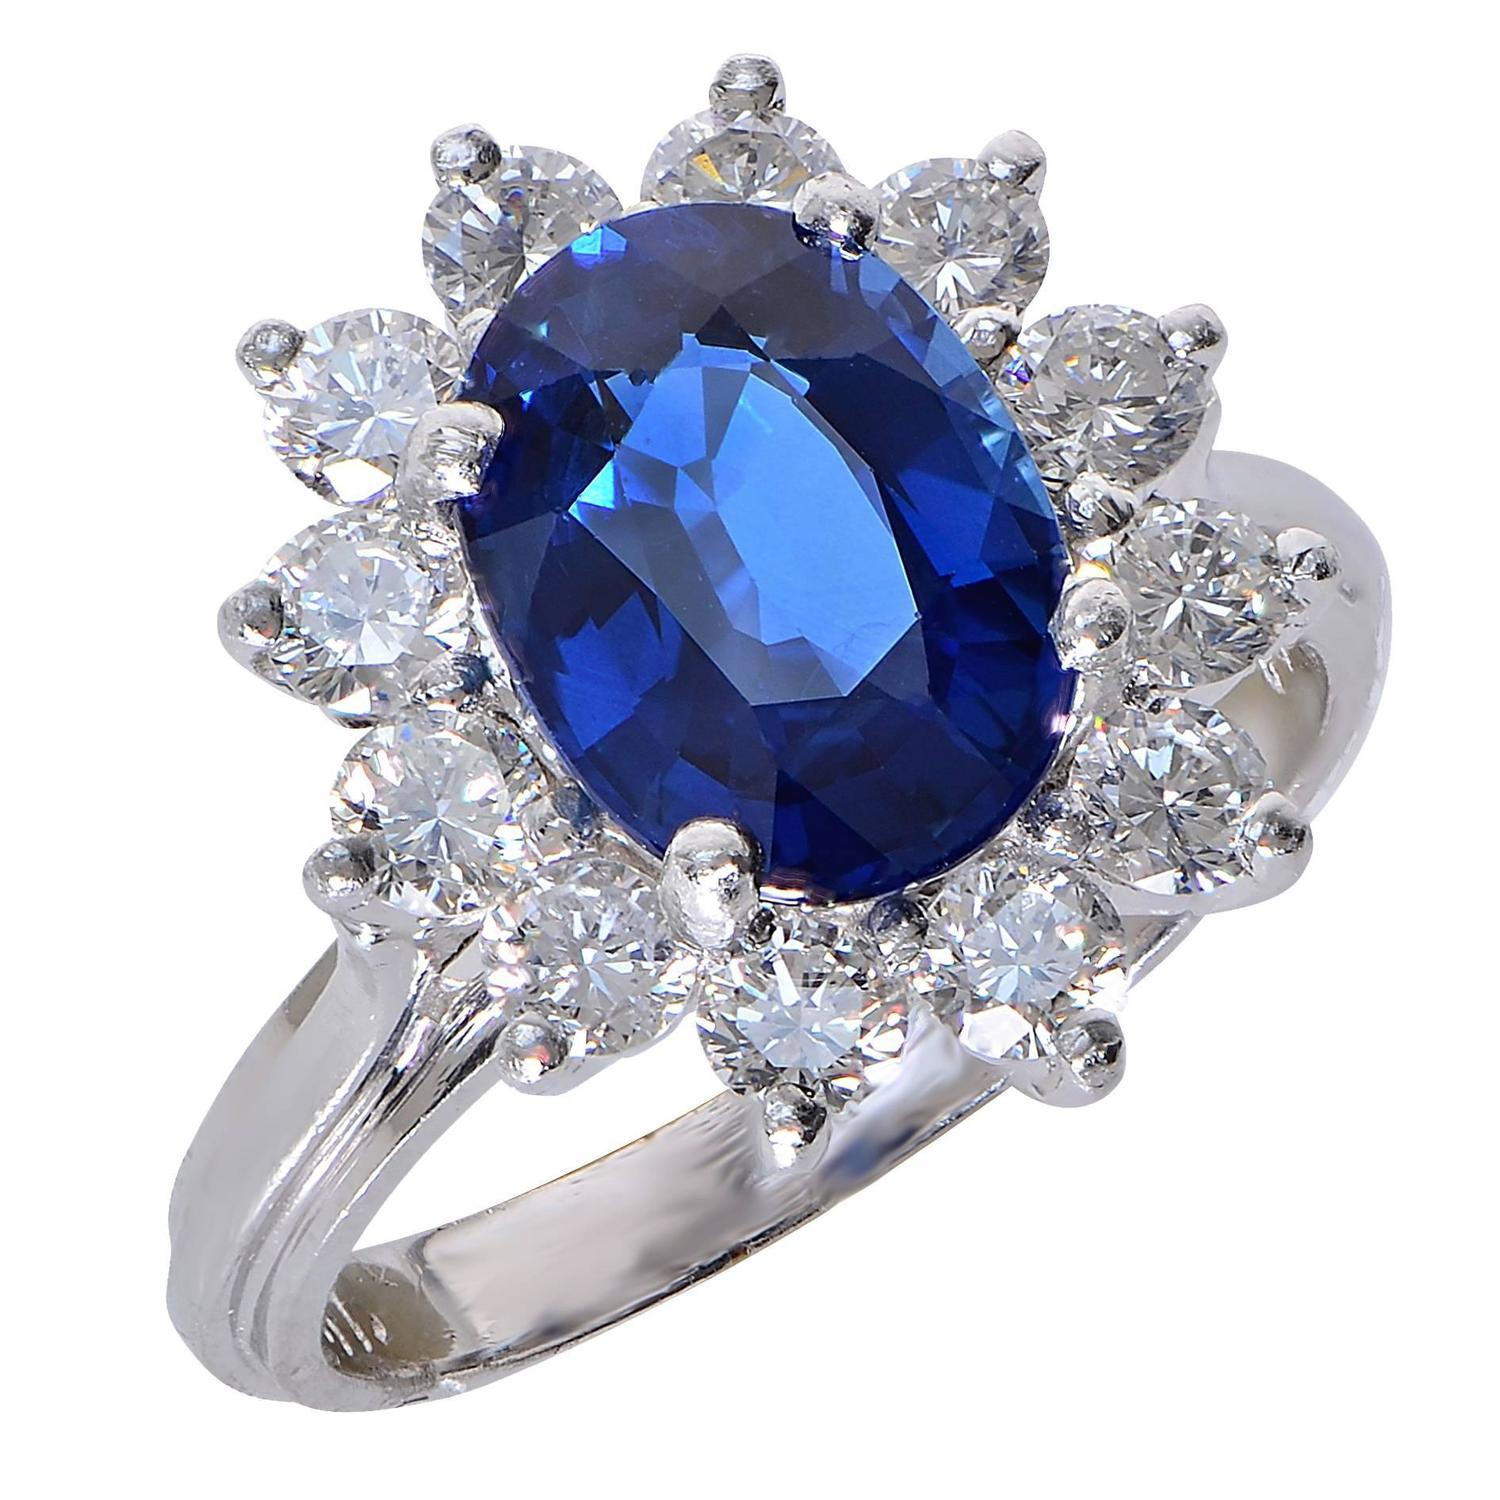 Carat sapphire diamond platinum ring for sale at 1stdibs for 26 carat diamond ring